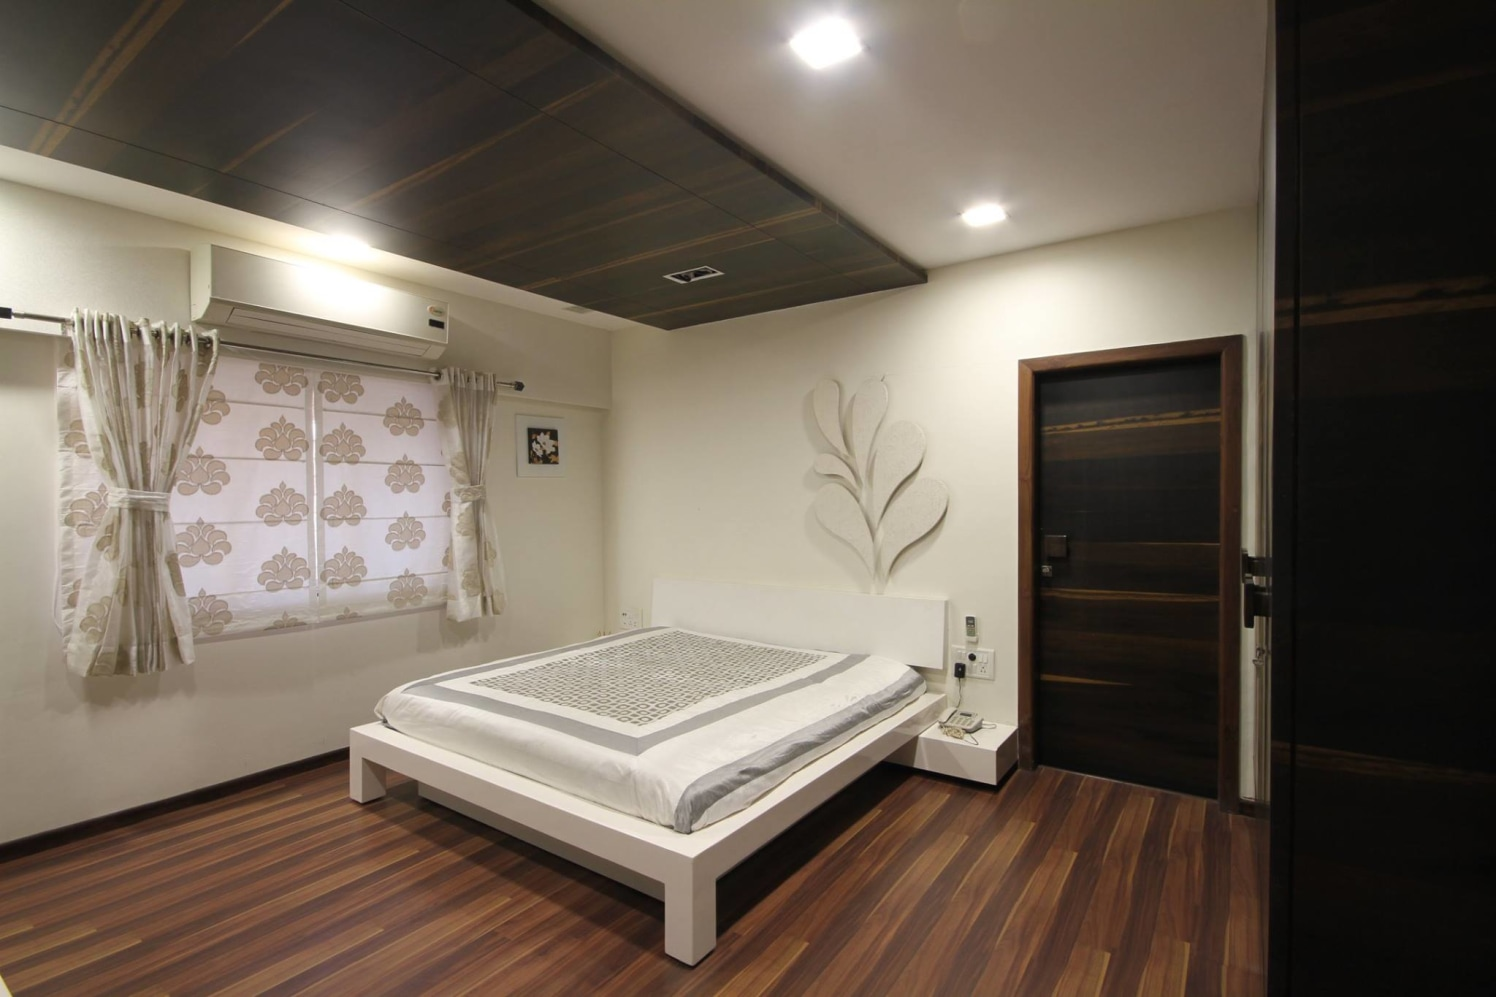 White Themed Bedroom With Wooden Flooring by Ankur Tulsyan  Bedroom Minimalistic | Interior Design Photos & Ideas